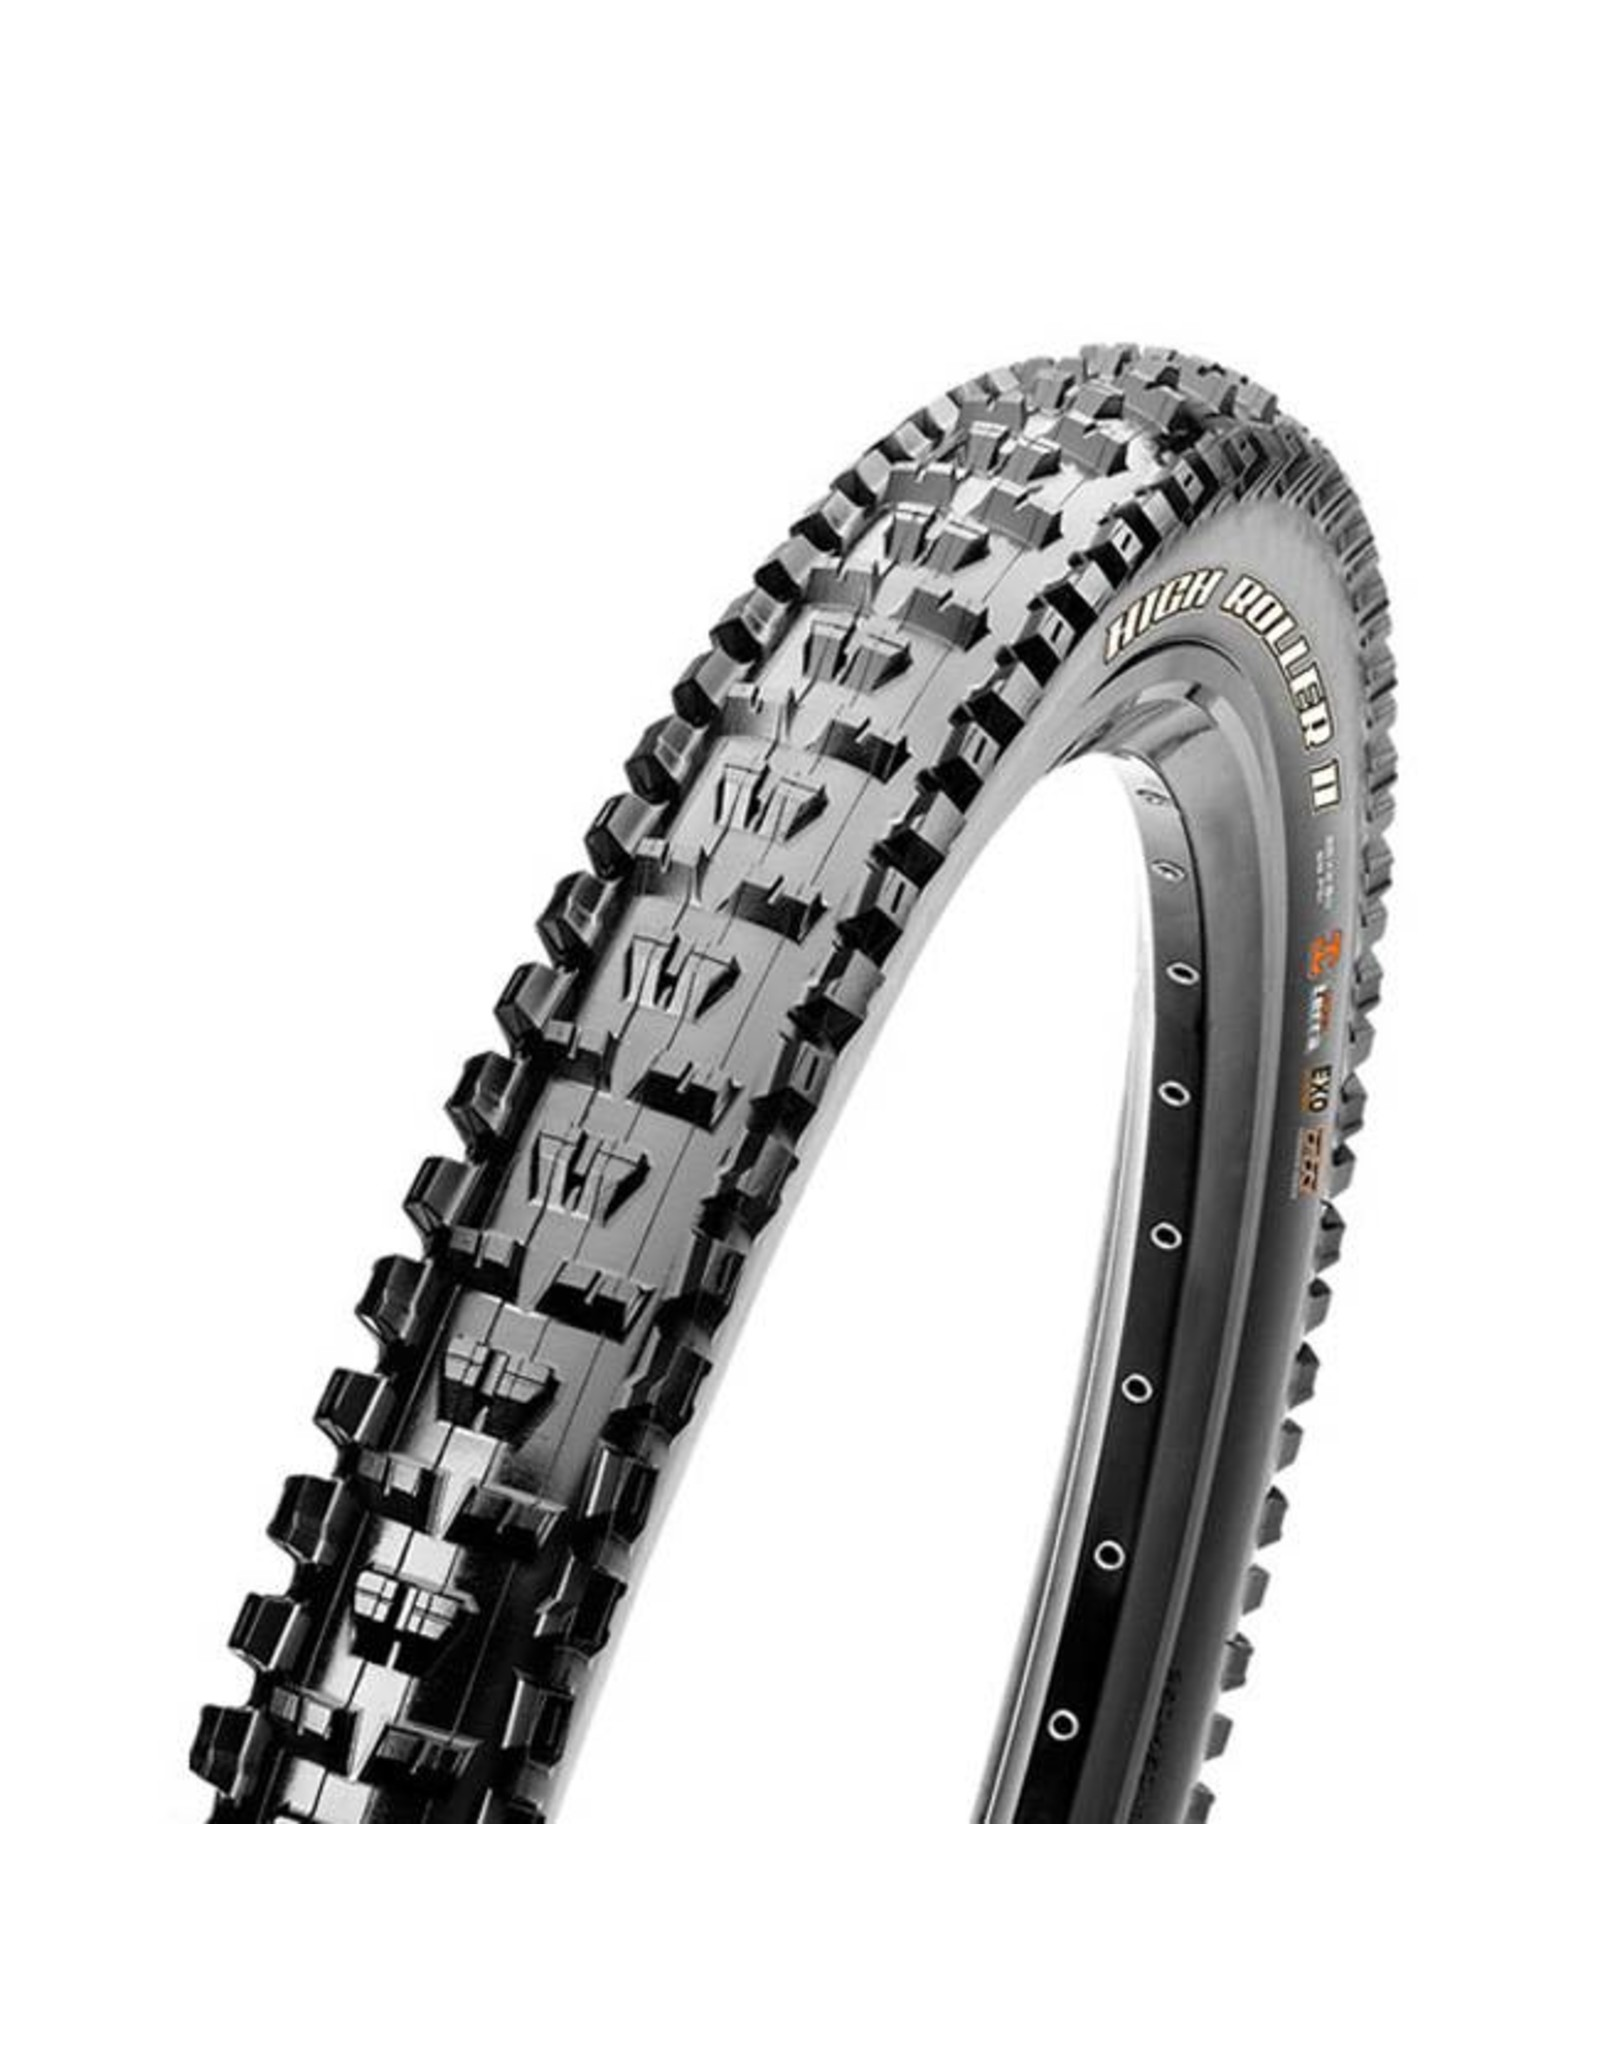 "Maxxis Maxxis High Roller II Tire: 27.5 x 2.30"", Folding, 60tpi, 3C, EXO, Tubeless Ready, Black"